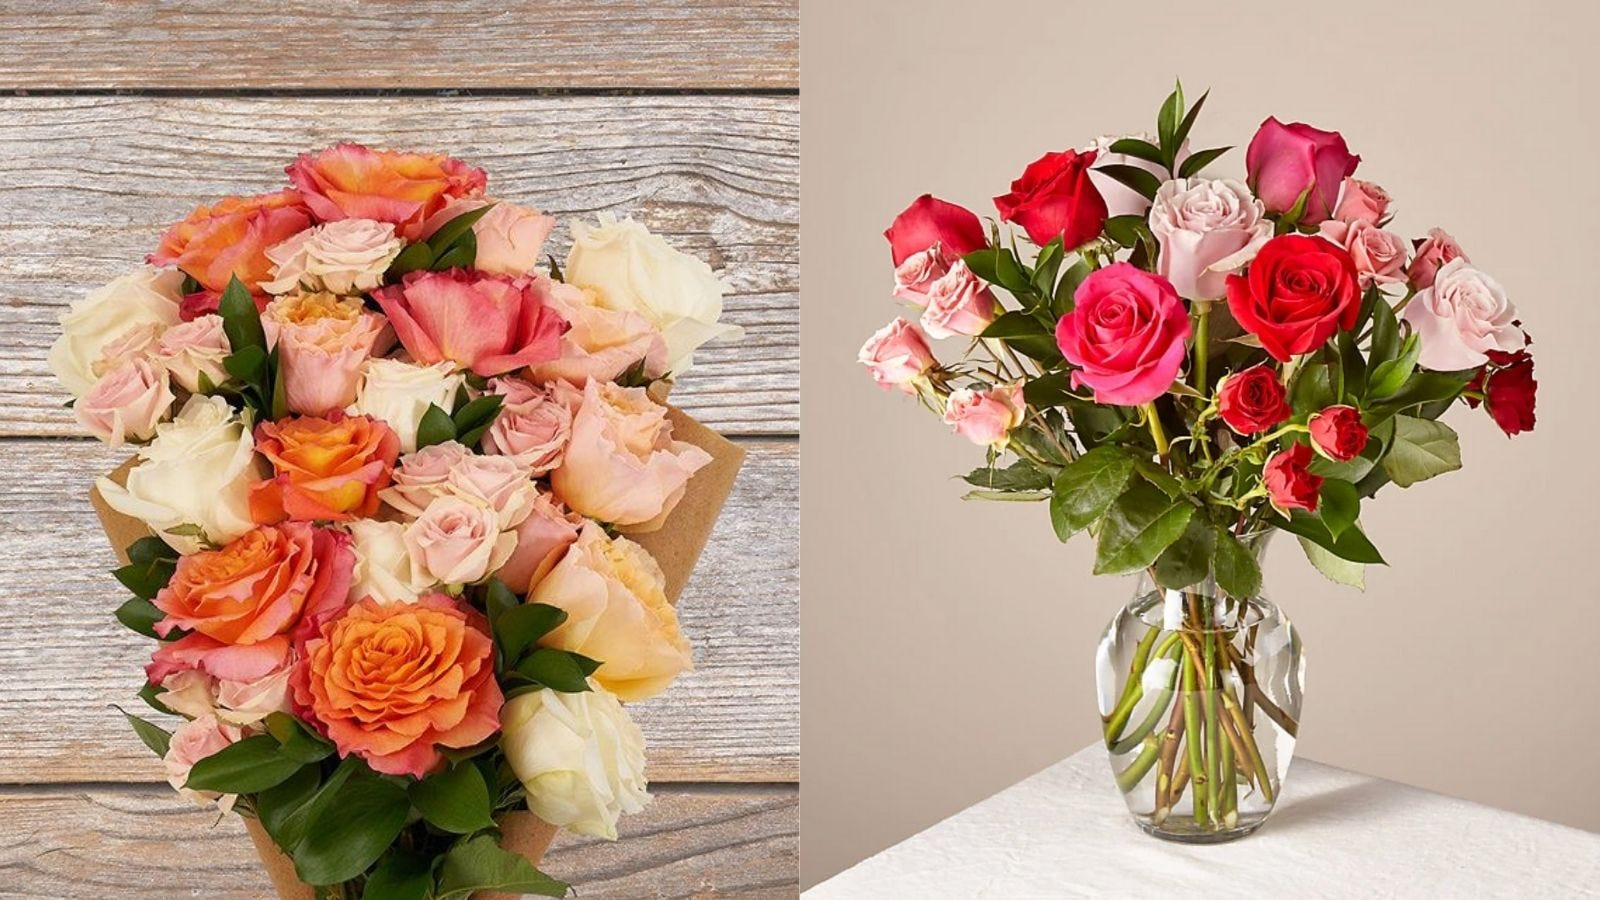 The 12 Best Places To Order Flowers Online Gorgeous Flower Bouquets For Valentine S Day